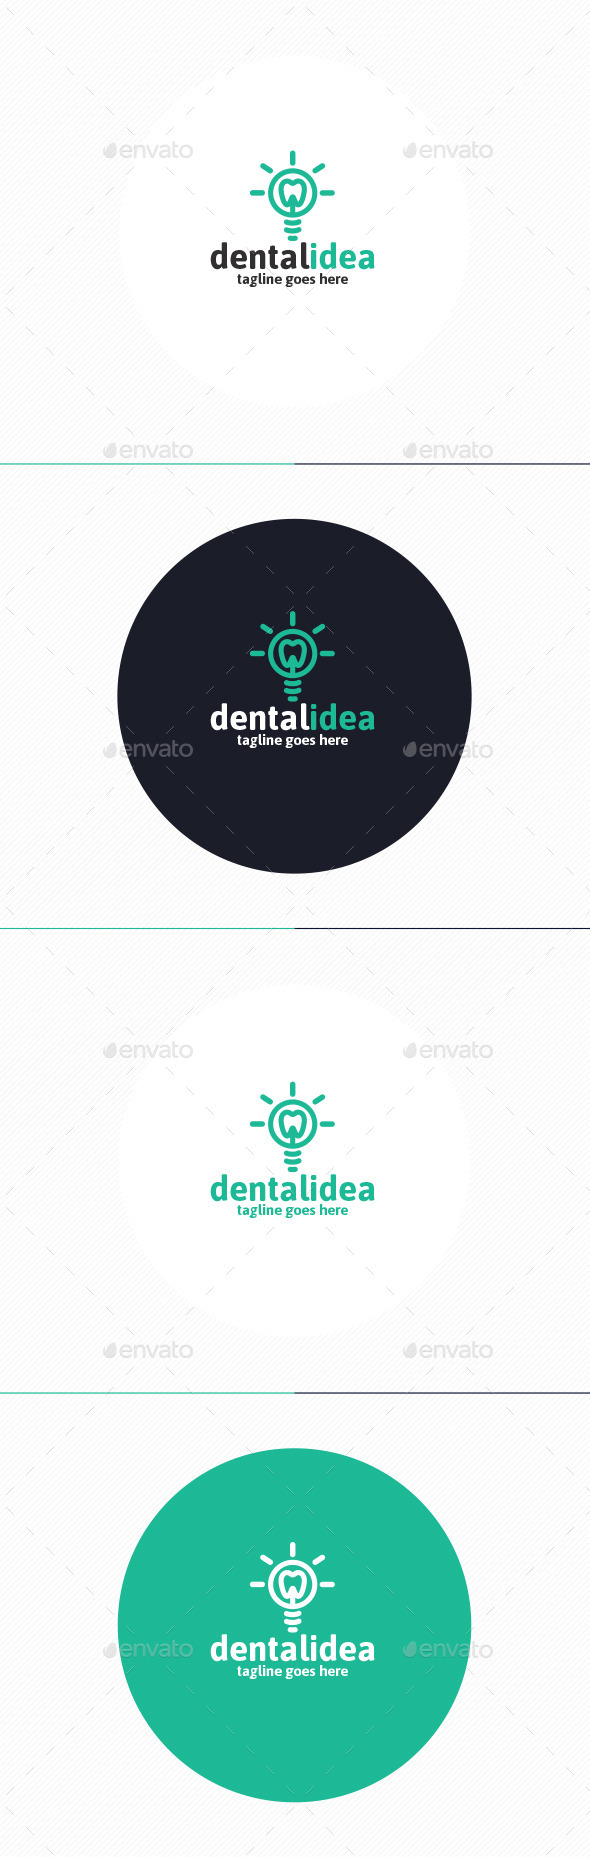 GraphicRiver Dental Idea Logo 9944756